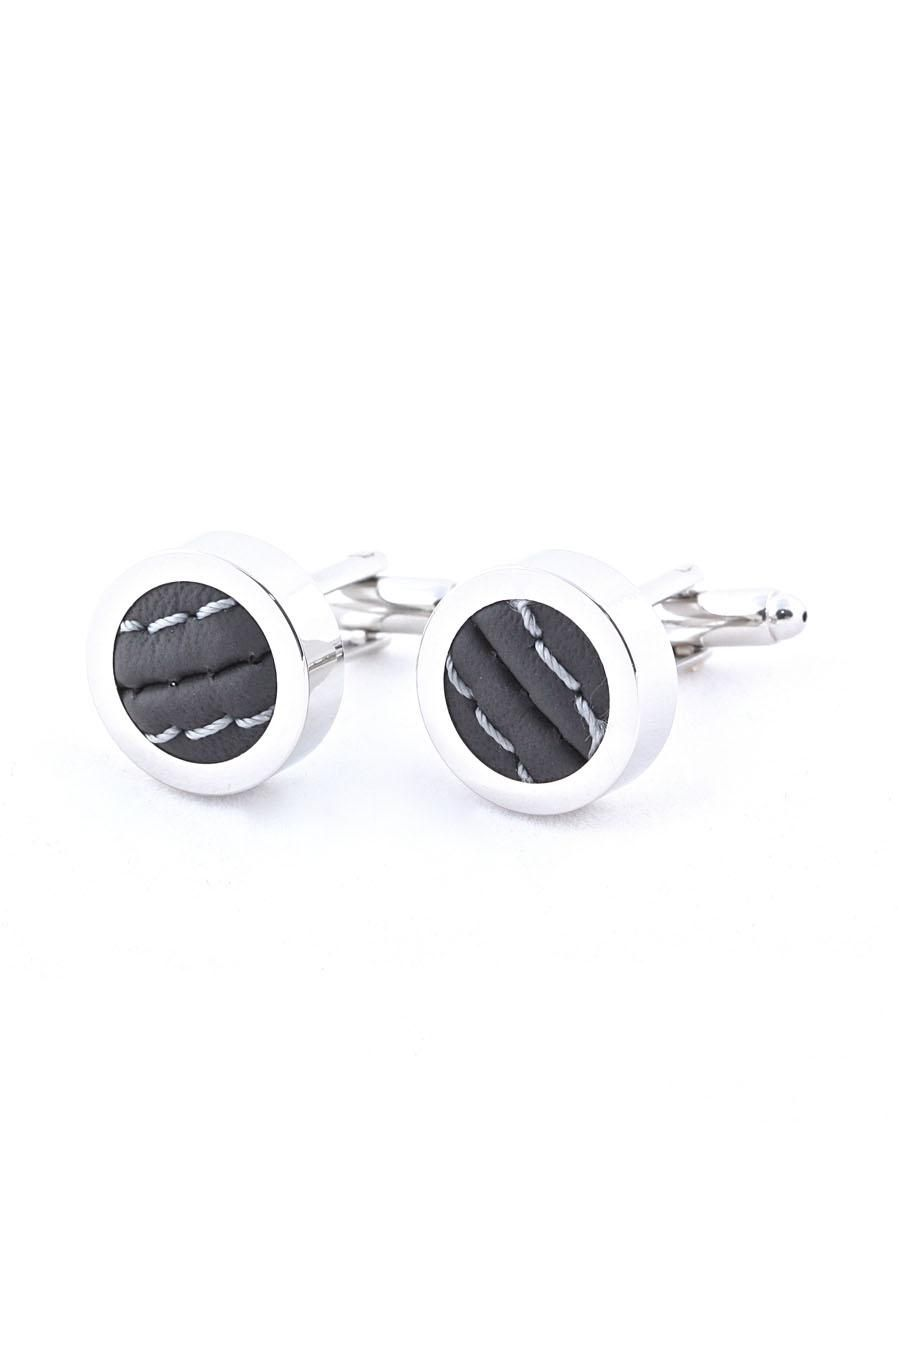 GREY FERRARI LEATHER CUFFLINKS